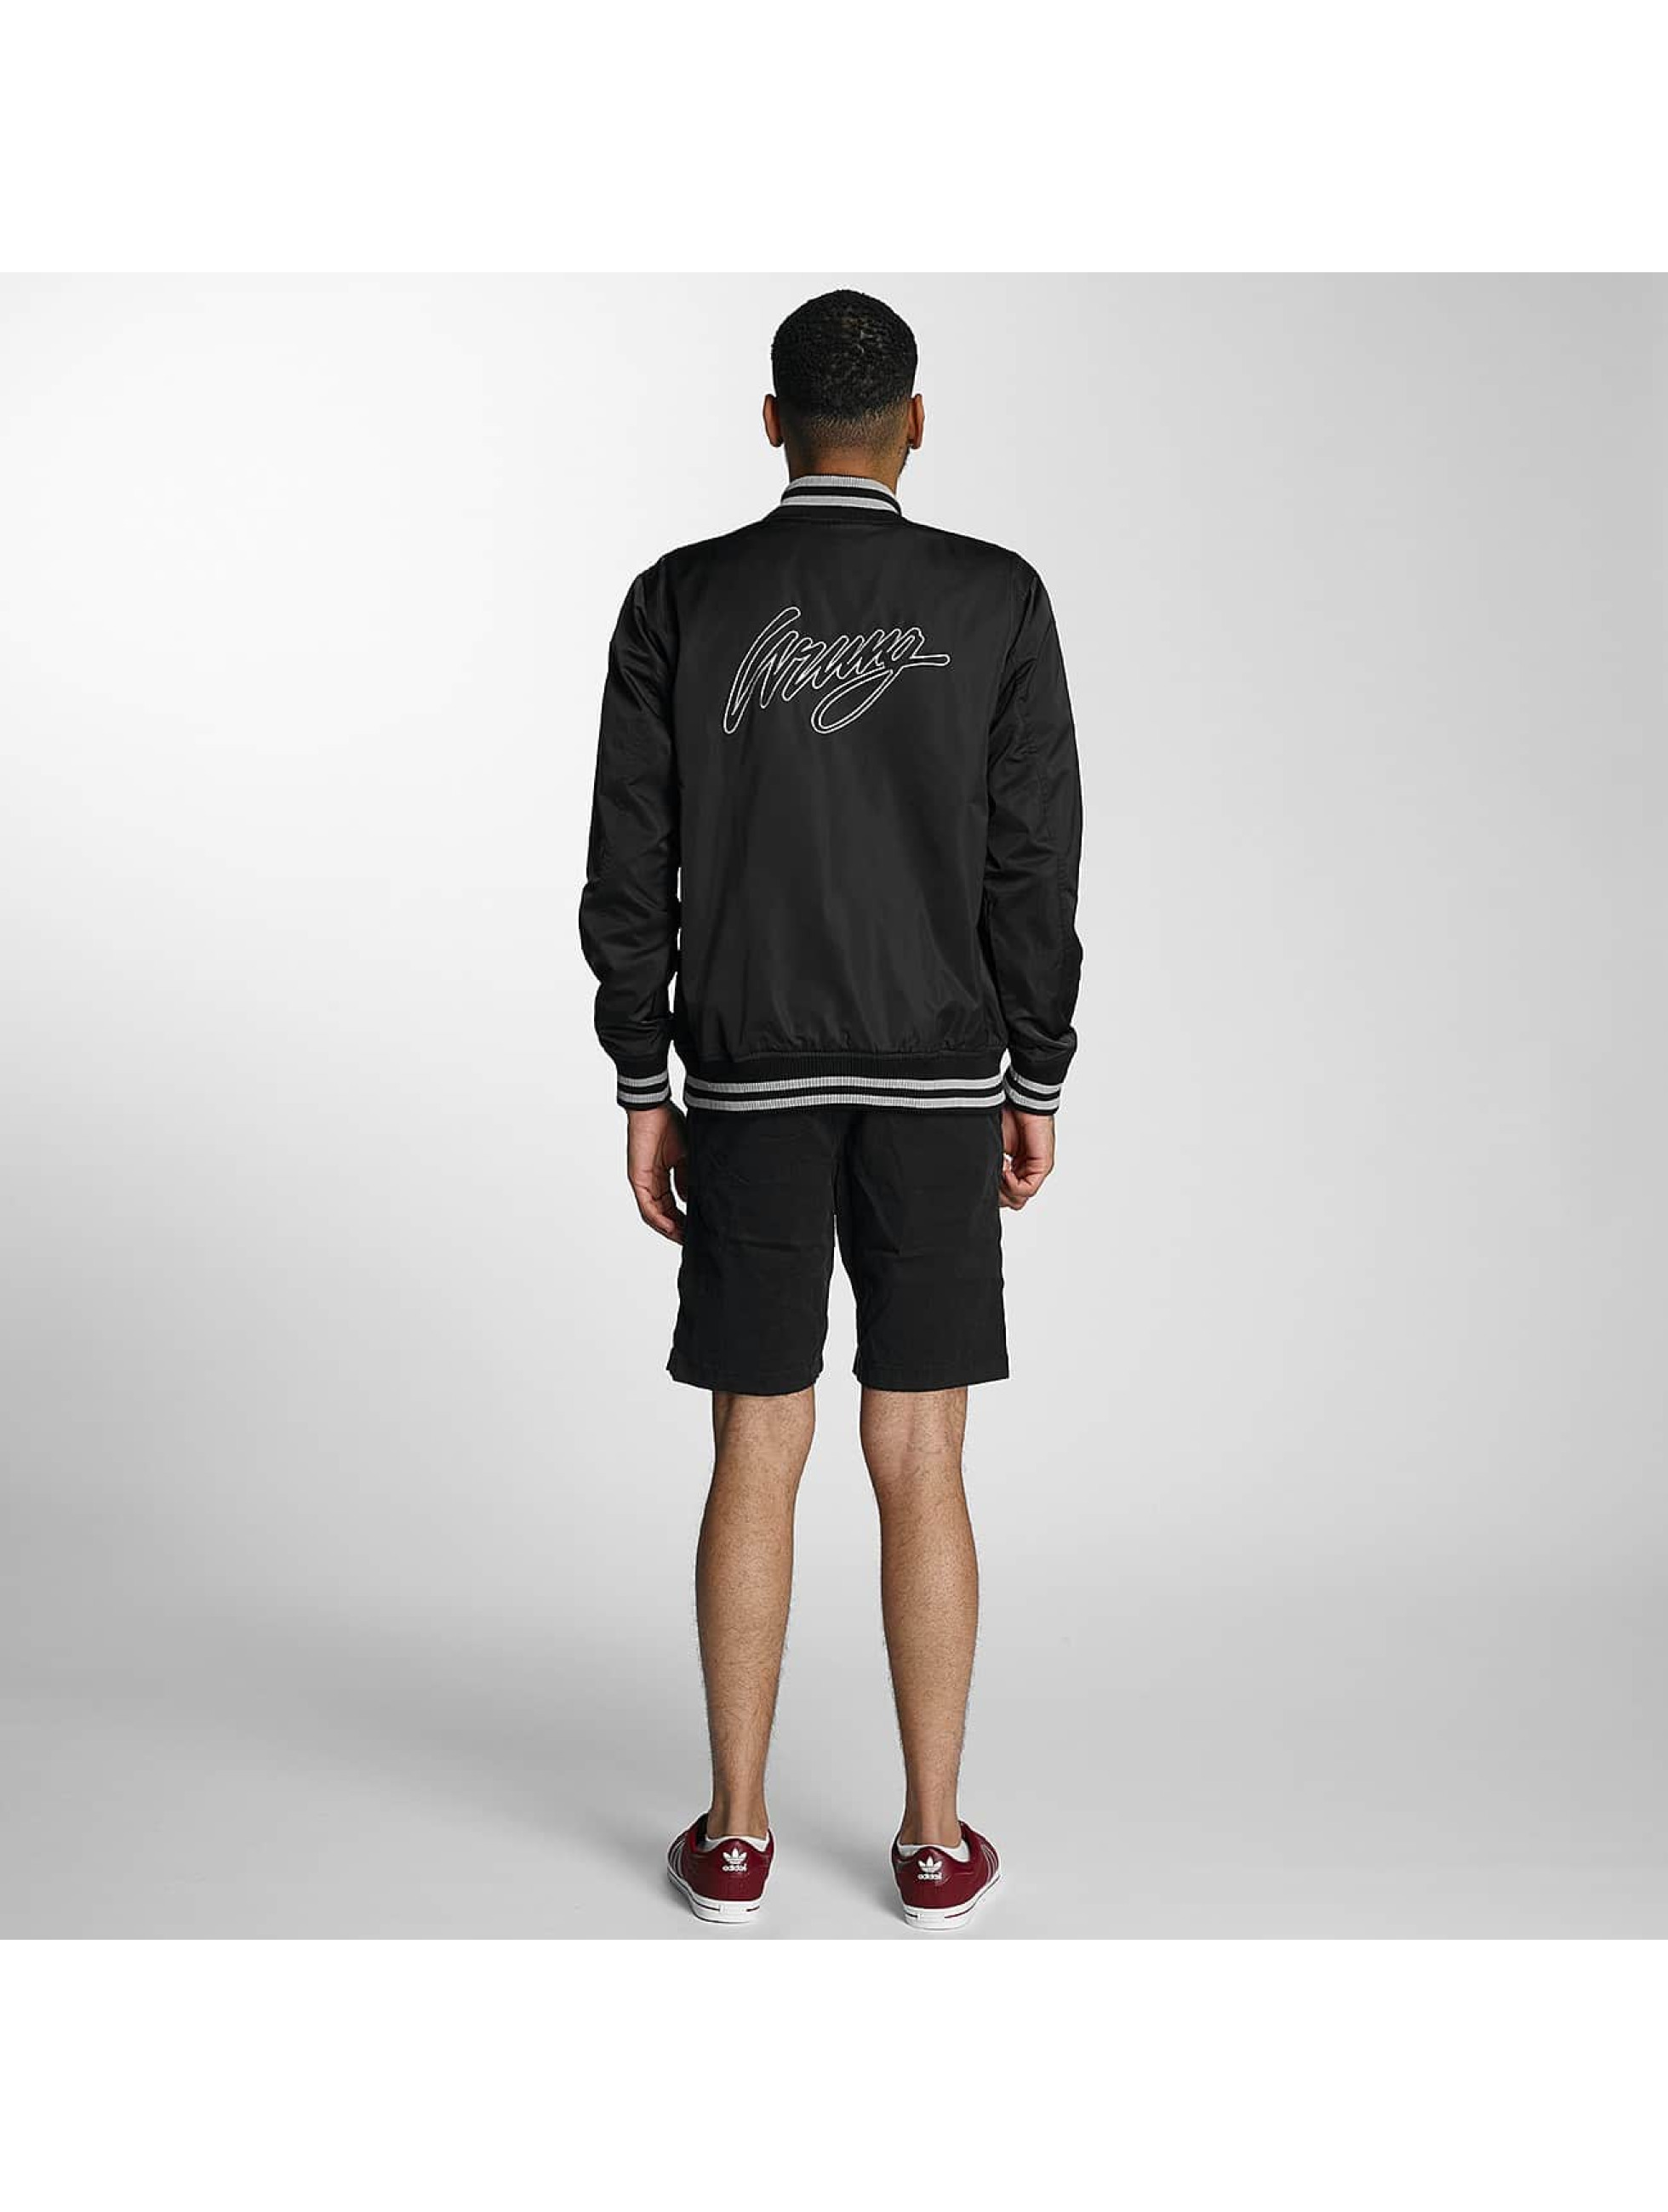 Wrung Division College Jackets Touchdown czarny